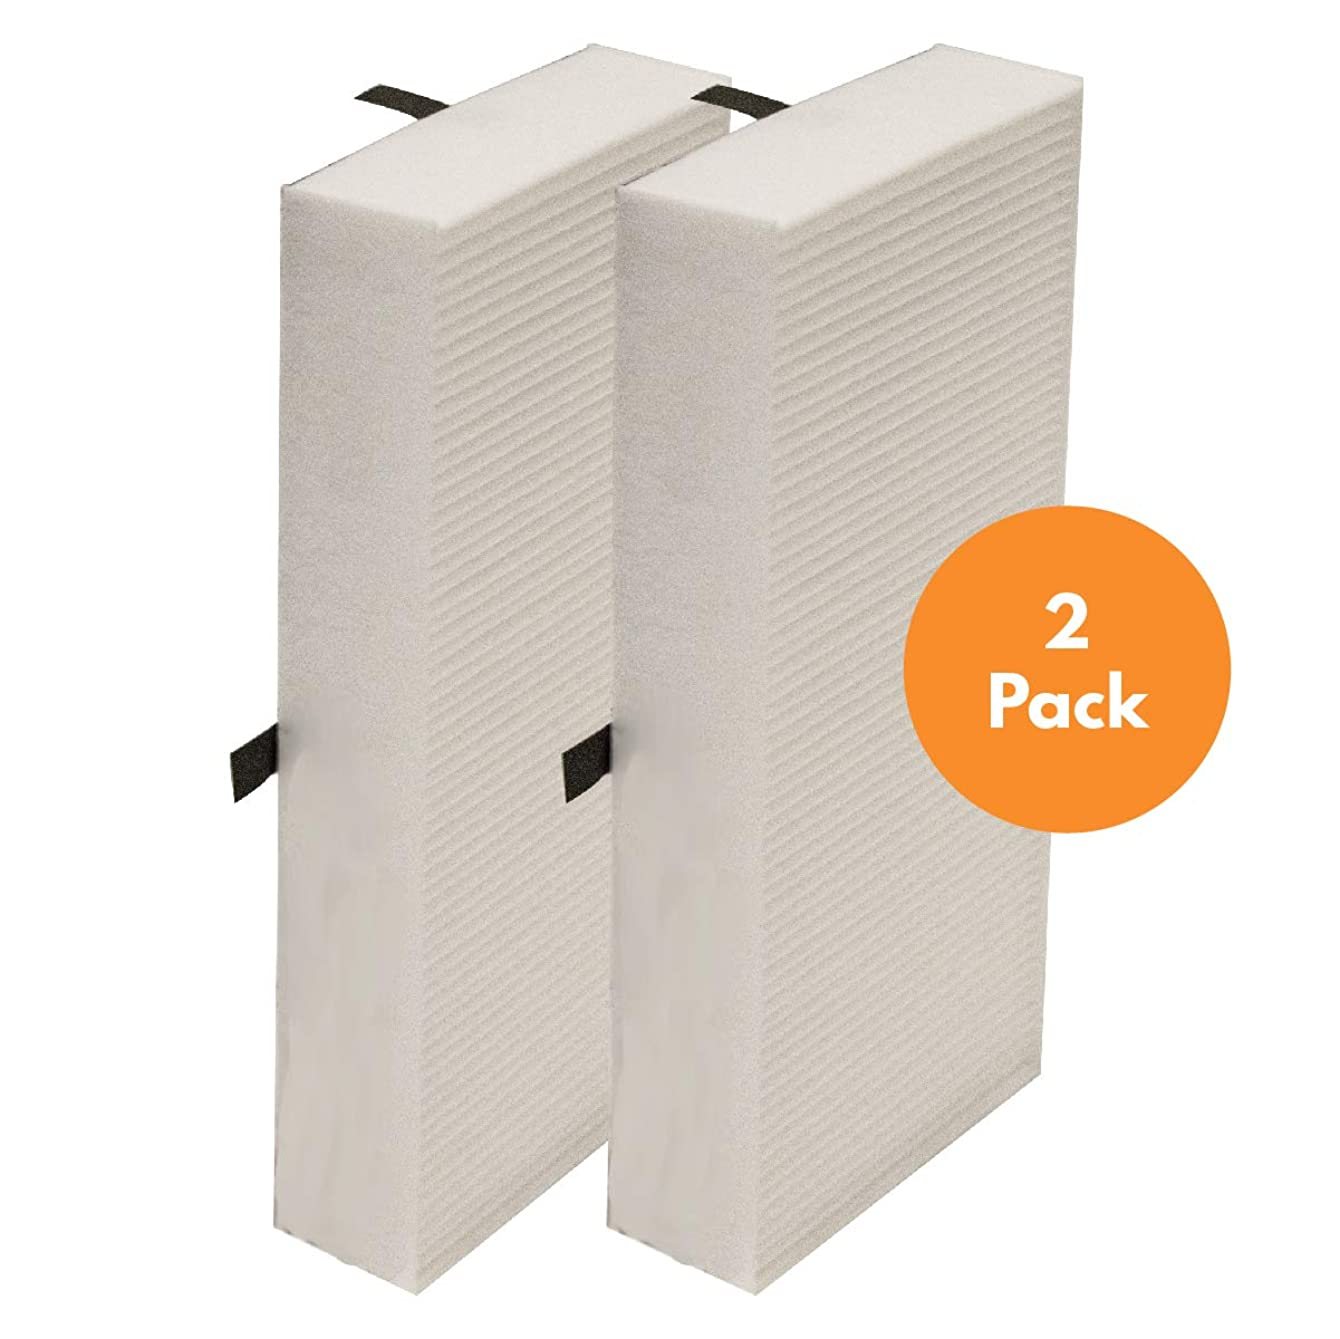 True HEPA Replacement Filter Compatible with Honeywell U Filter (HRF201B) for Honeywell HHT270, HHT290 Series Air Purifiers